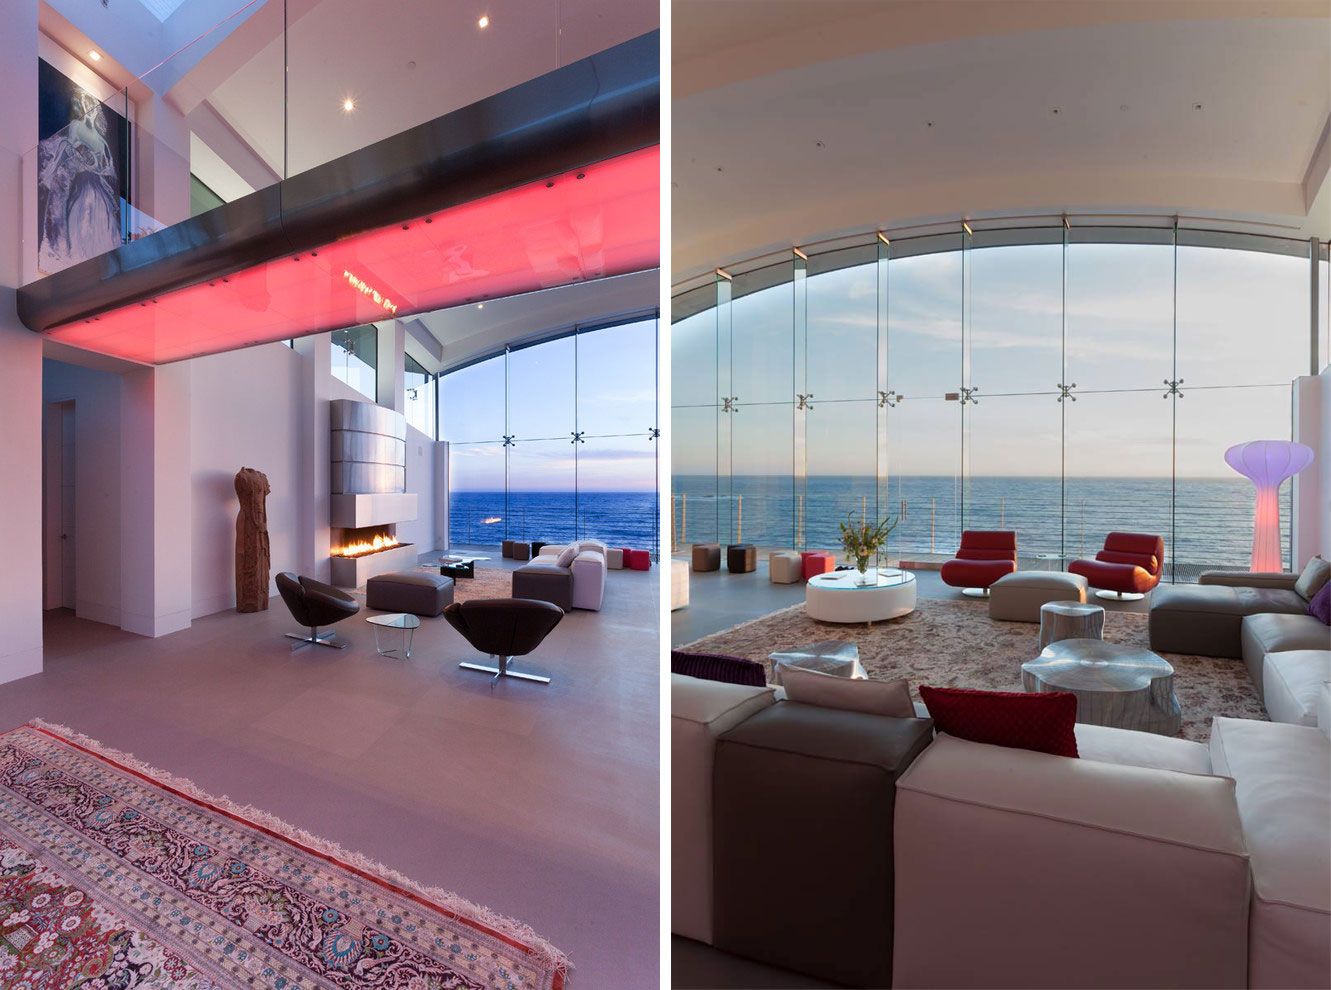 Modern Configuration of Carmel Highlands Residence With Awesome Sea Views by Eric Miller Architects-48